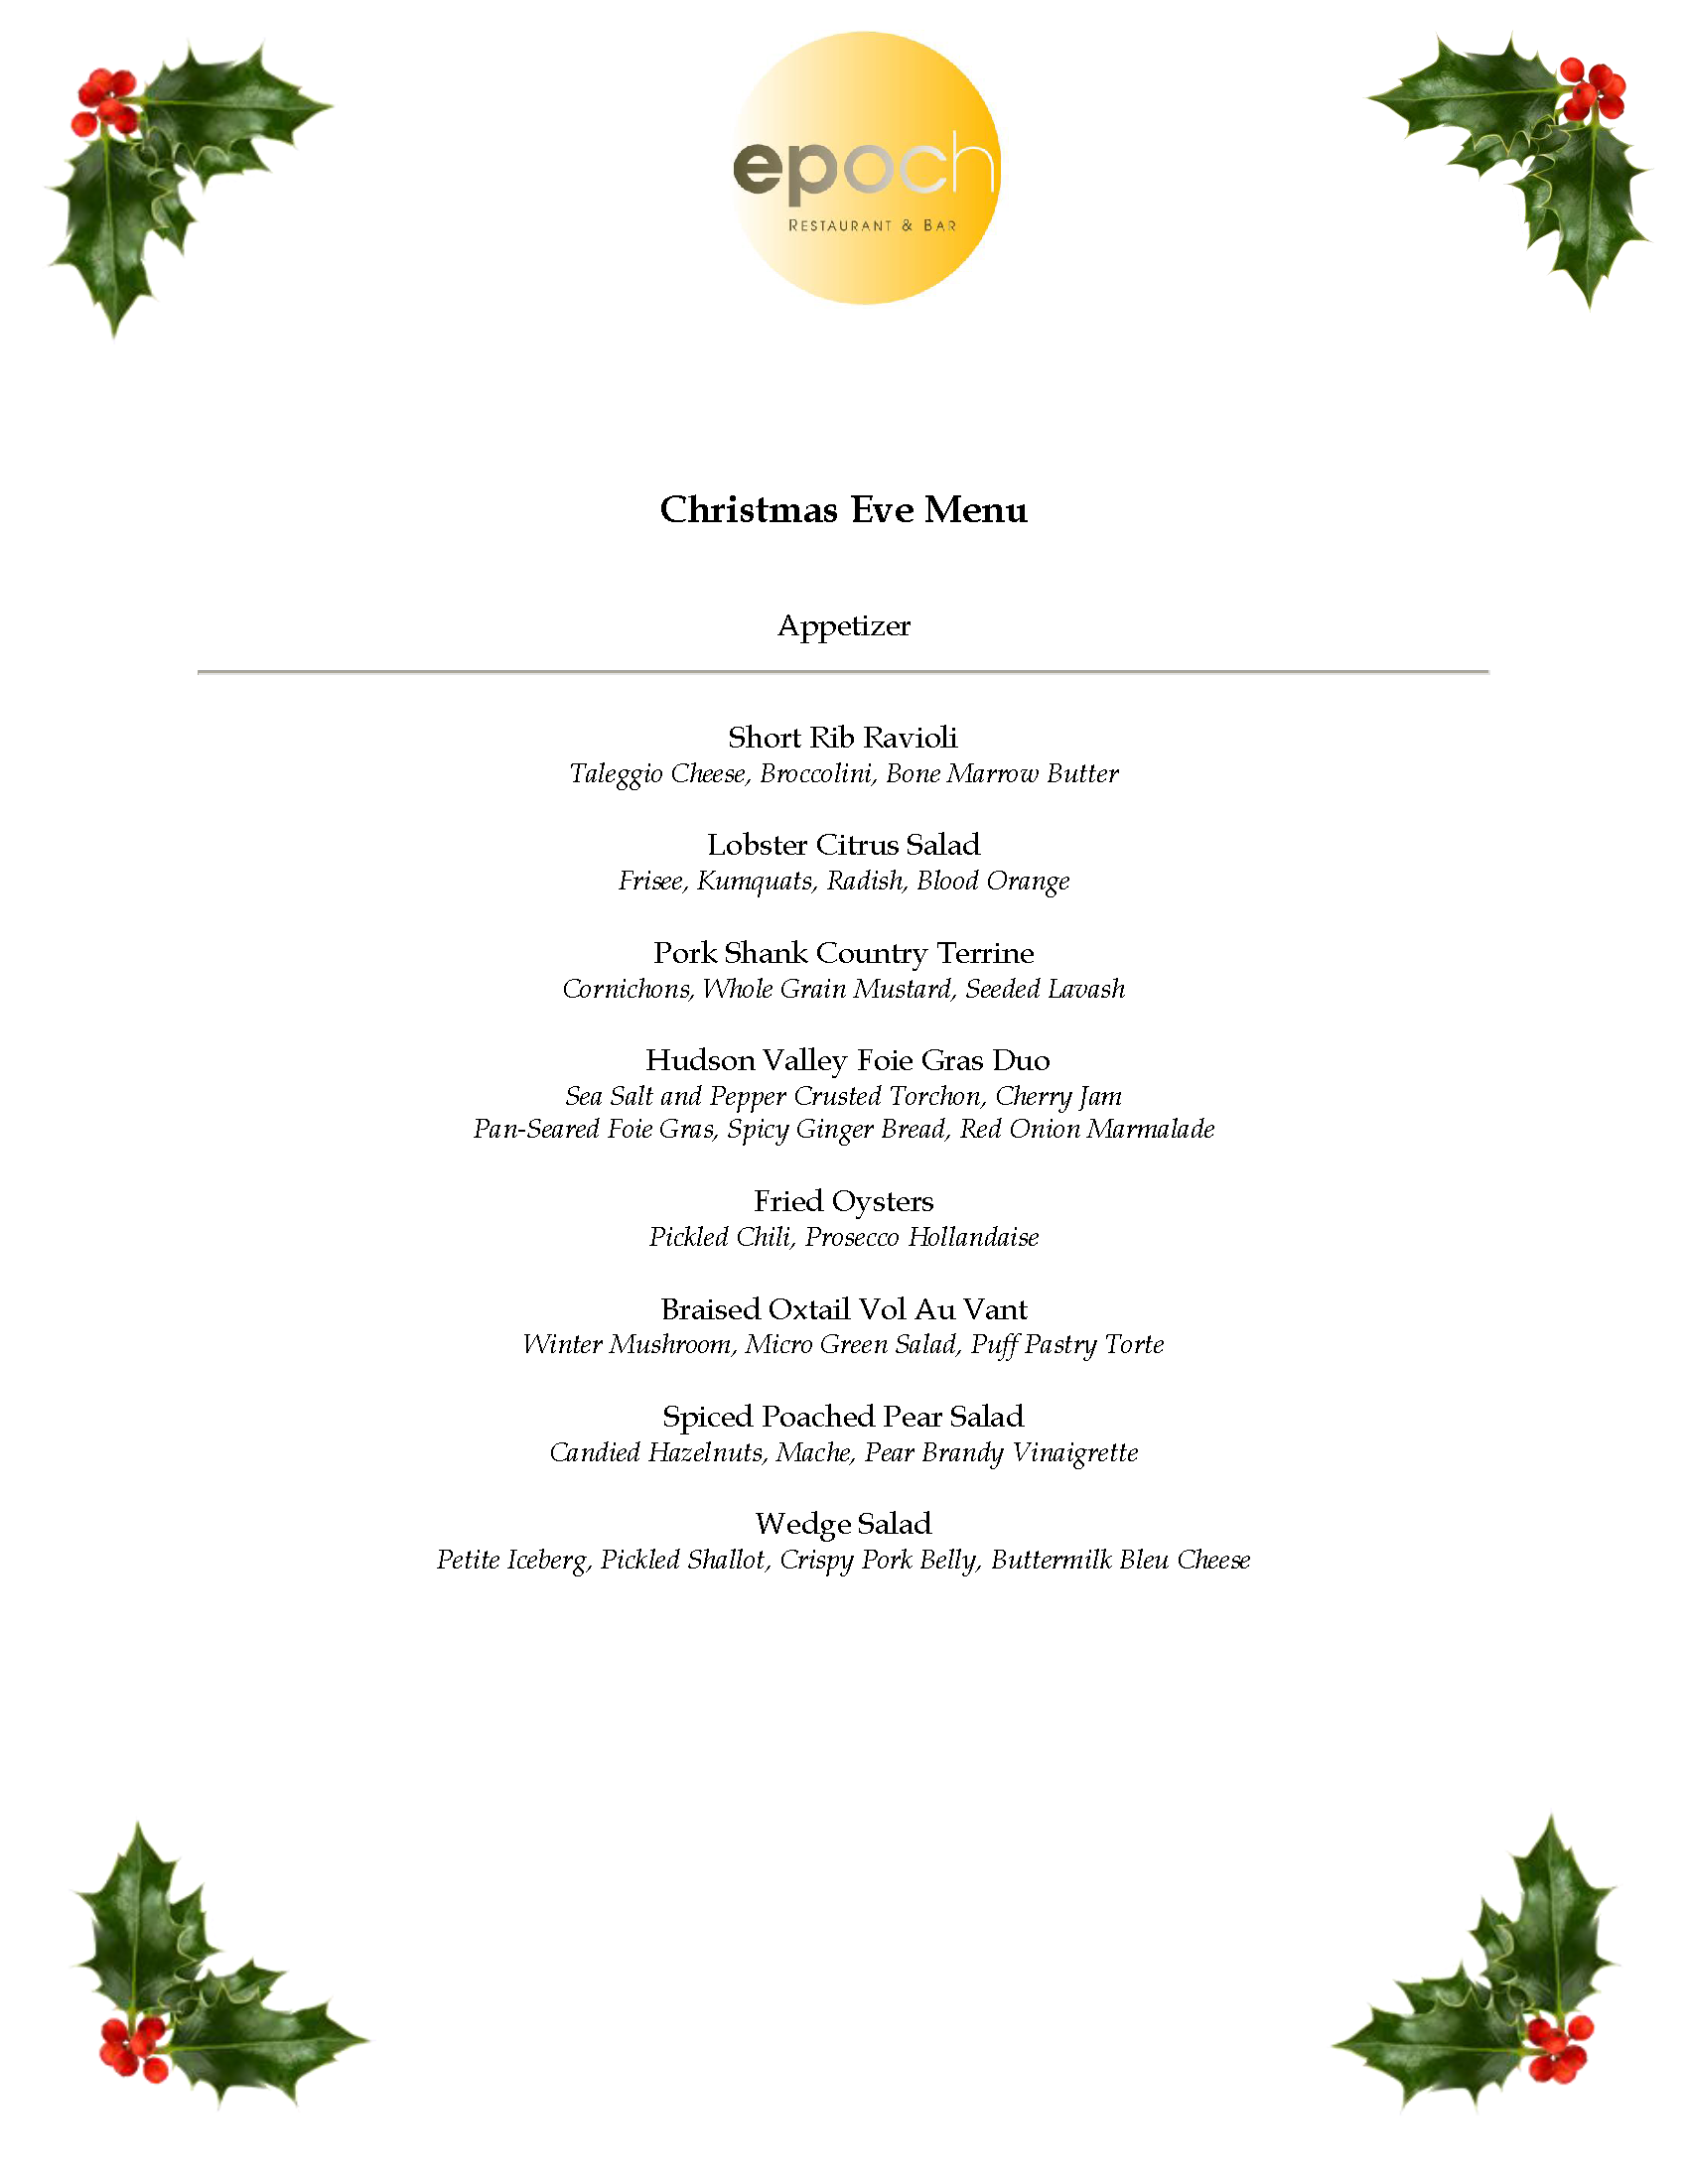 christmas eve dinner menu 2013 epoch restaurant bar page 1